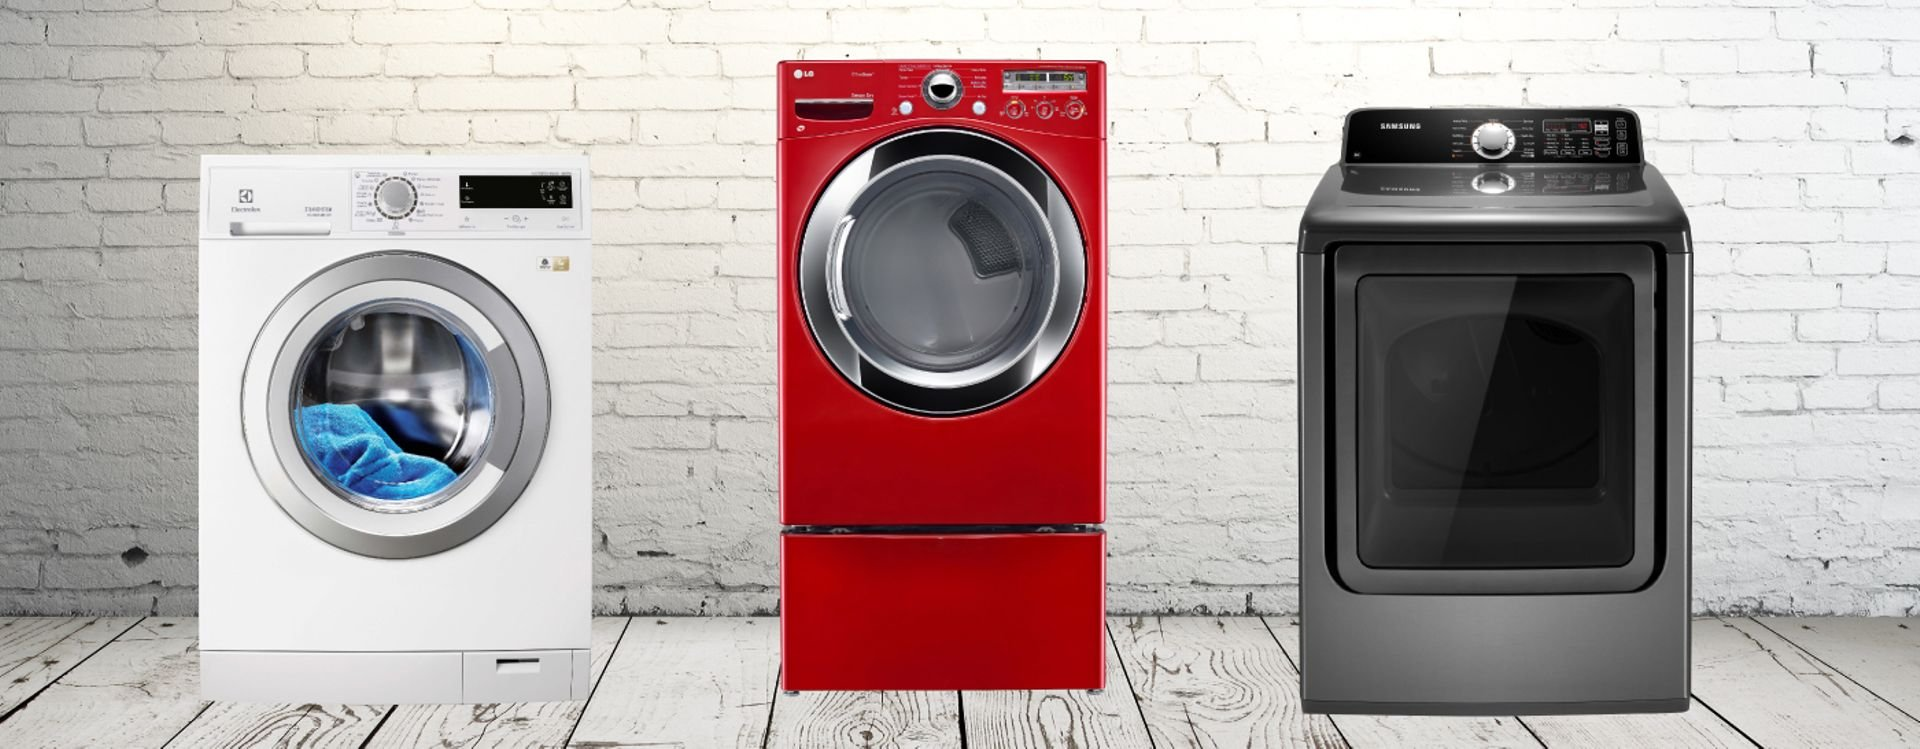 Your guide for choosing a tumble dryer